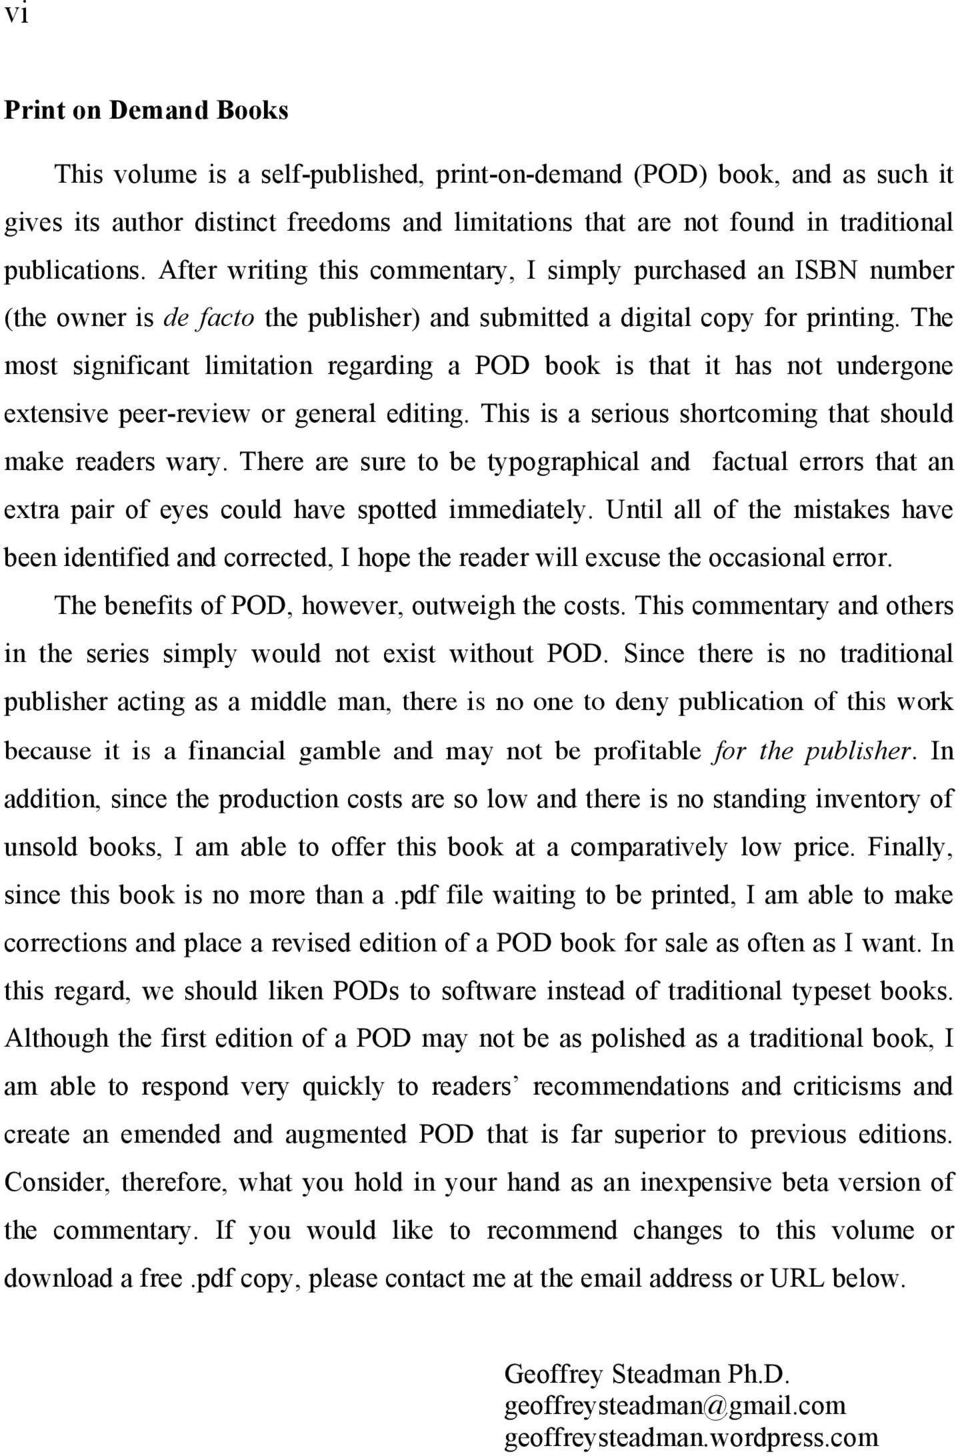 The most significant limitation regarding a POD book is that it has not undergone extensive peer-review or general editing. This is a serious shortcoming that should make readers wary.